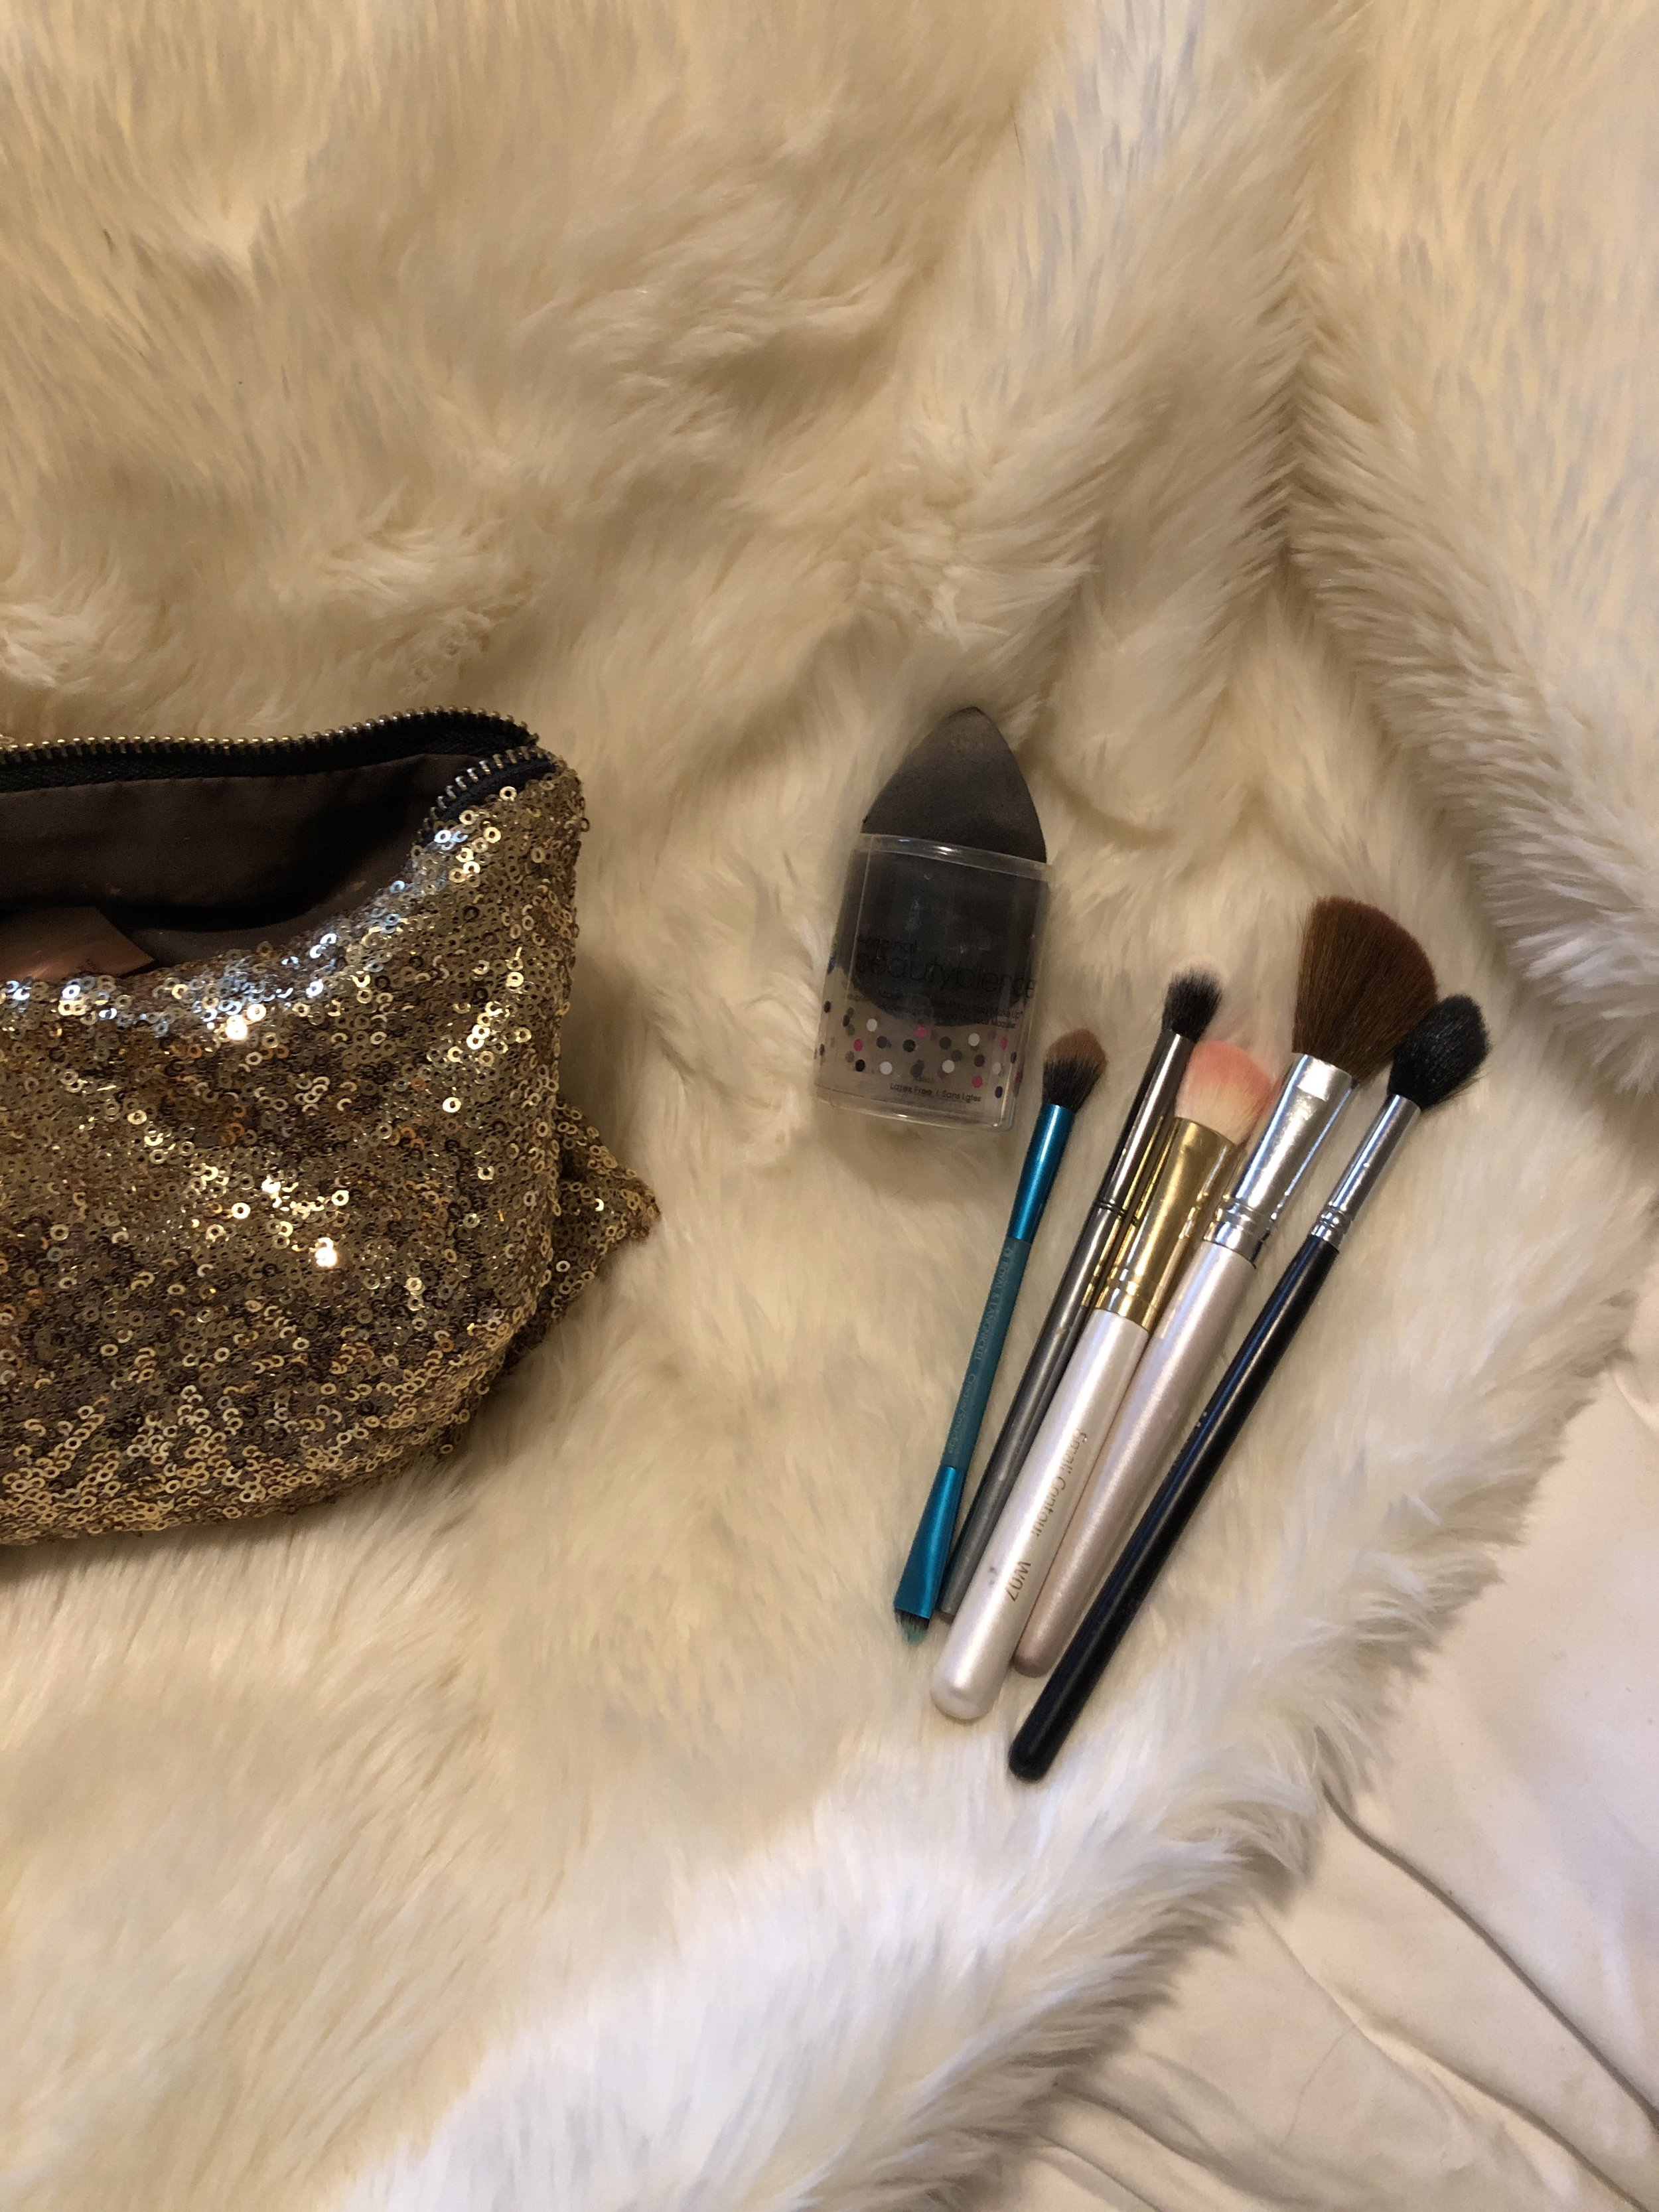 Beauty Blender Highlight brush Two fluffy blending brushes, one double ended; the other end is a flat shader brush for liner Contouring brush (I use this for bronzer and blush) one smaller fluffy brush to wipe away any excess